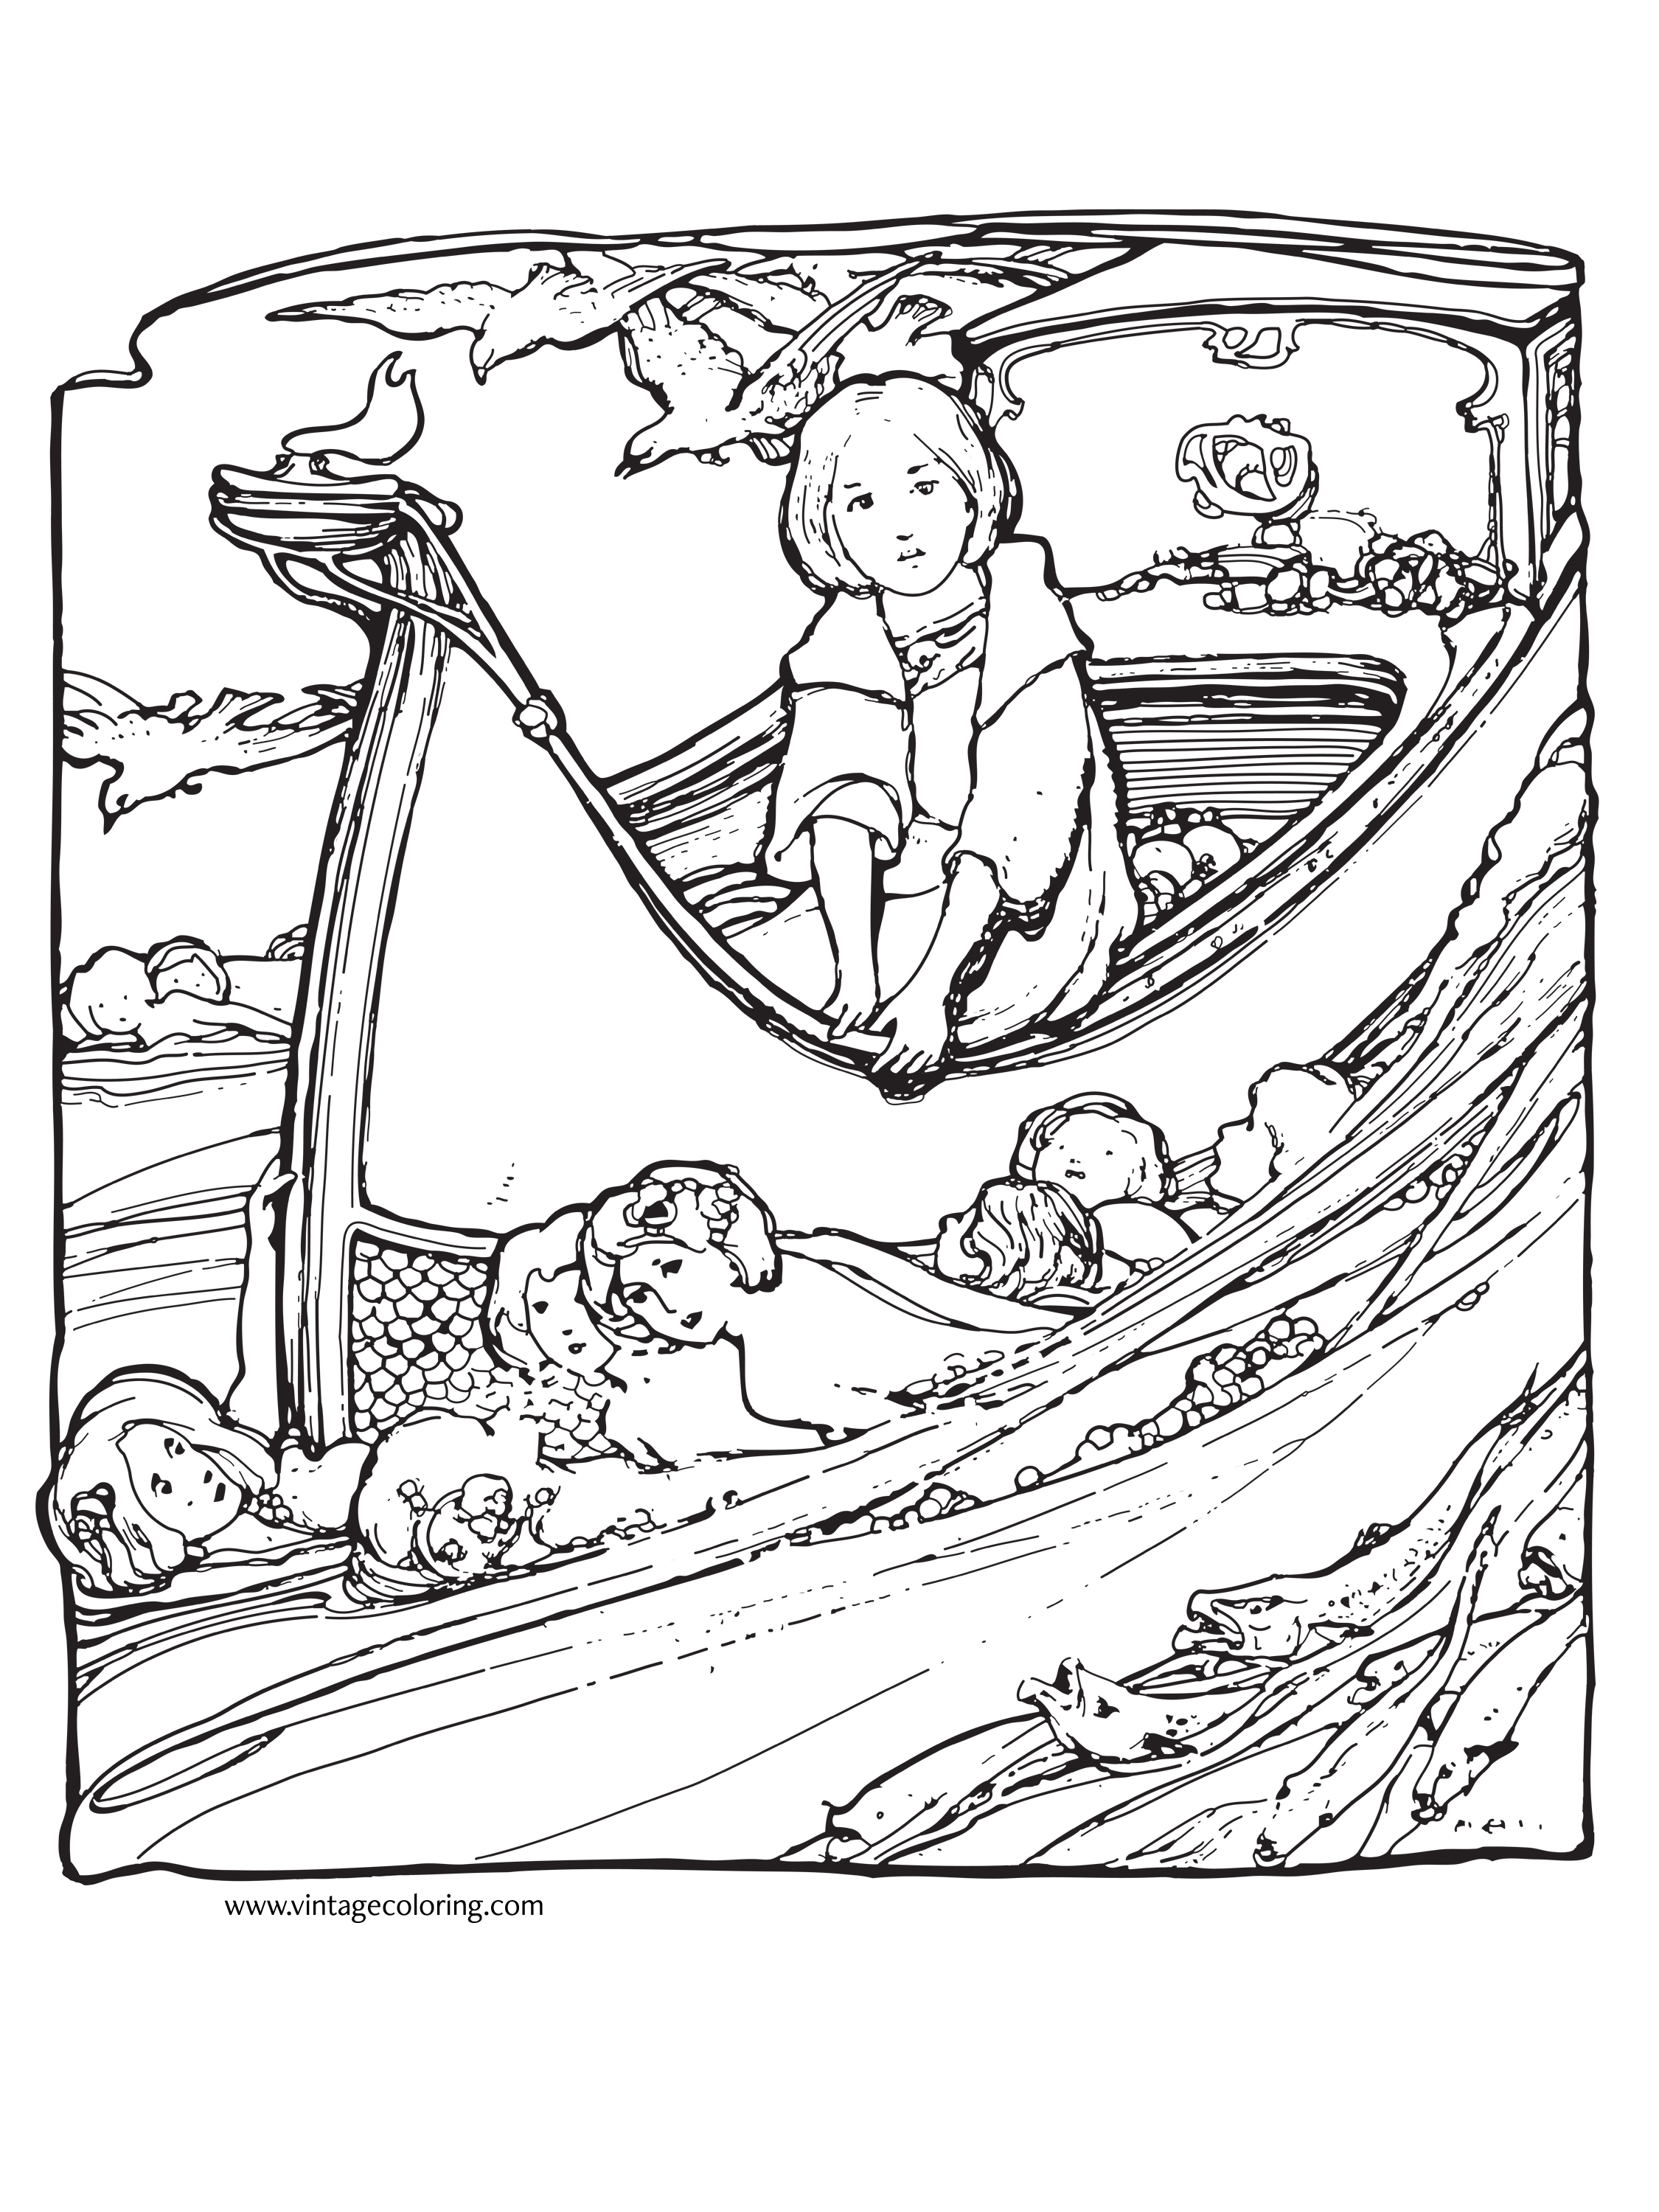 2250x3000 Precious Moments Vintage Coloring Pages For Adults Justcolor